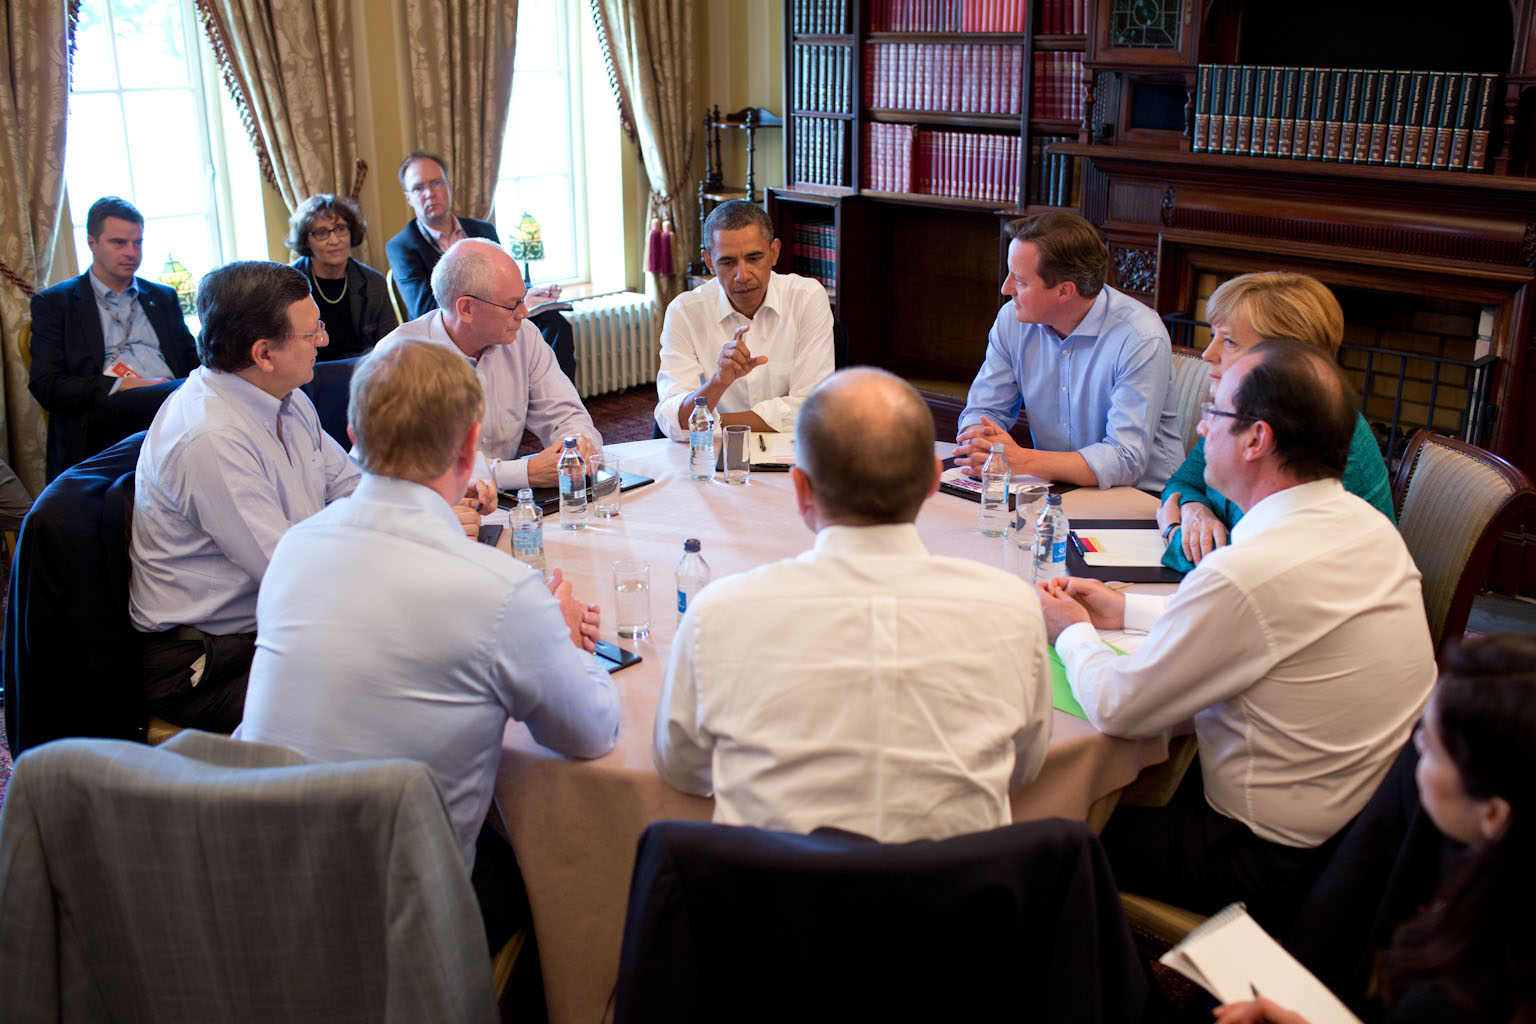 President Barack Obama participates in a G8 Summit meeting on Transatlantic Trade and Investment Partnership